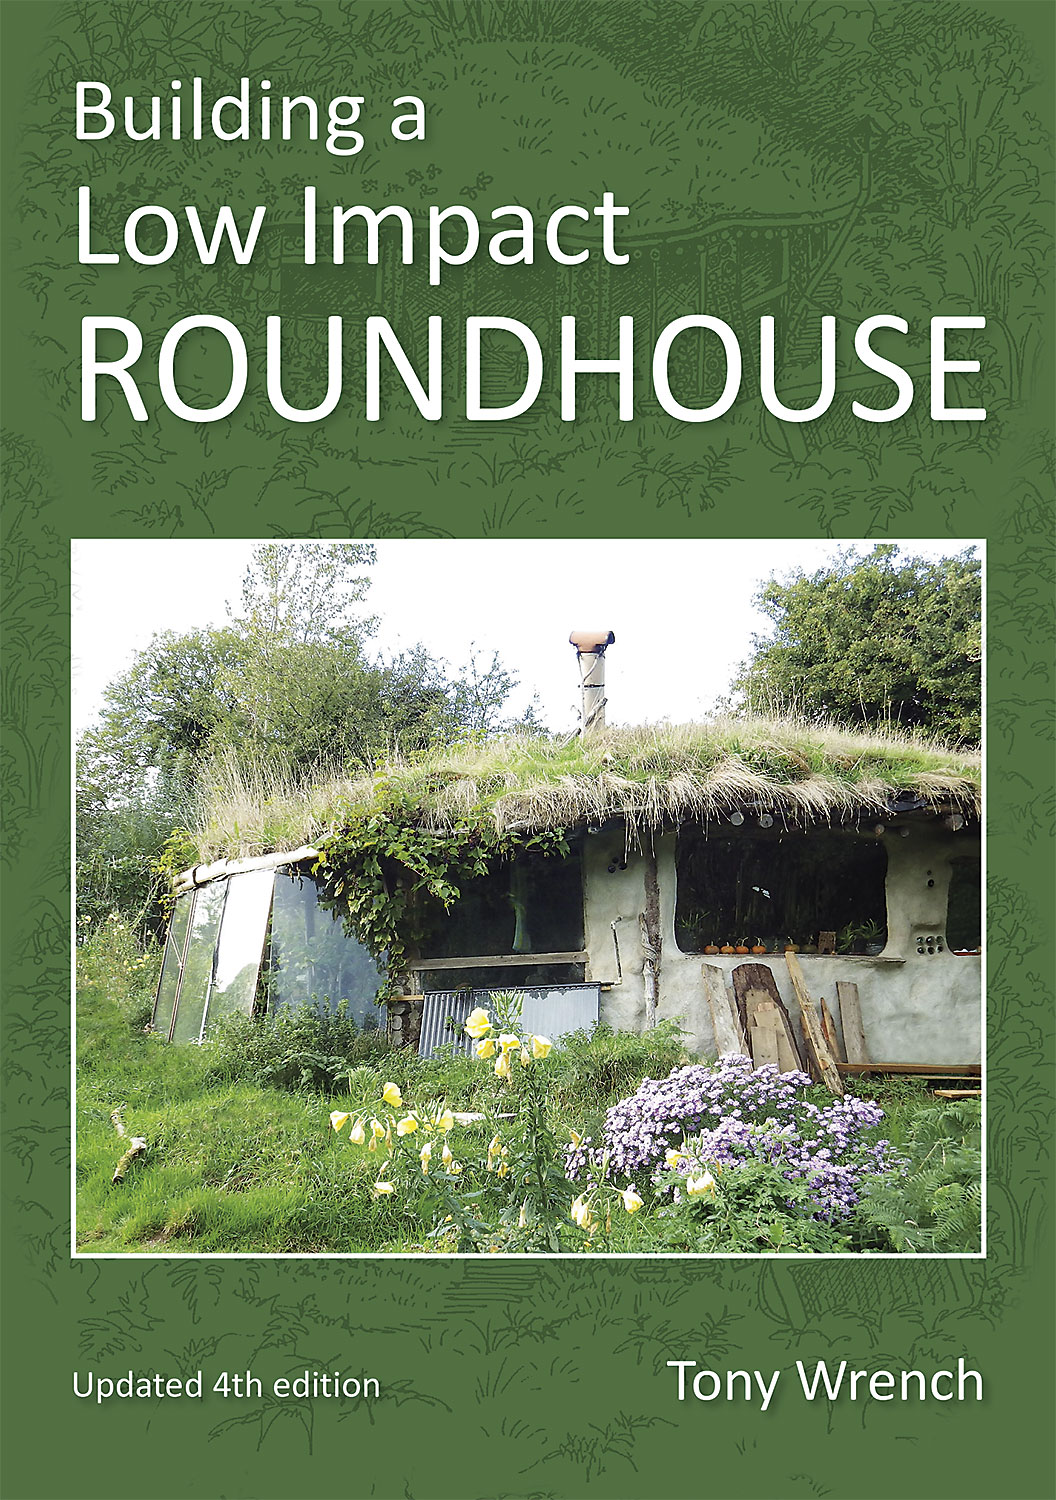 Building a Low Impact Roundhouse: Fourth Edition by Tony Wrench